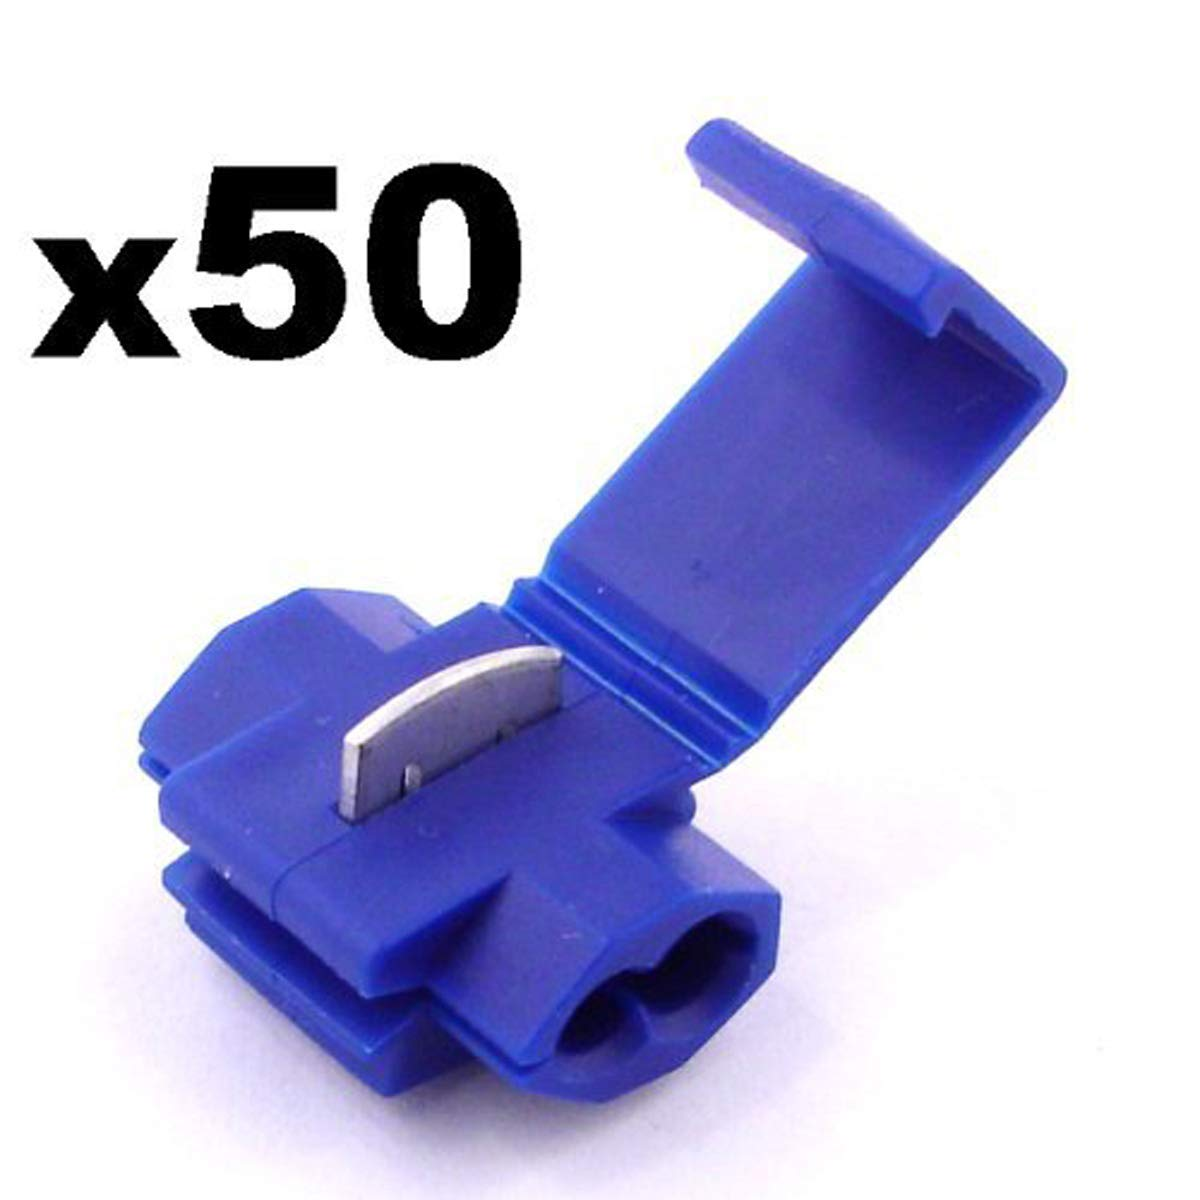 Scotch Lock Snap Splice Connectors Electrical X 50 Blue 8487curtwiringtconnectorstrailerwireconnectorjpg Free First Class Uk Postage Car Motorbike